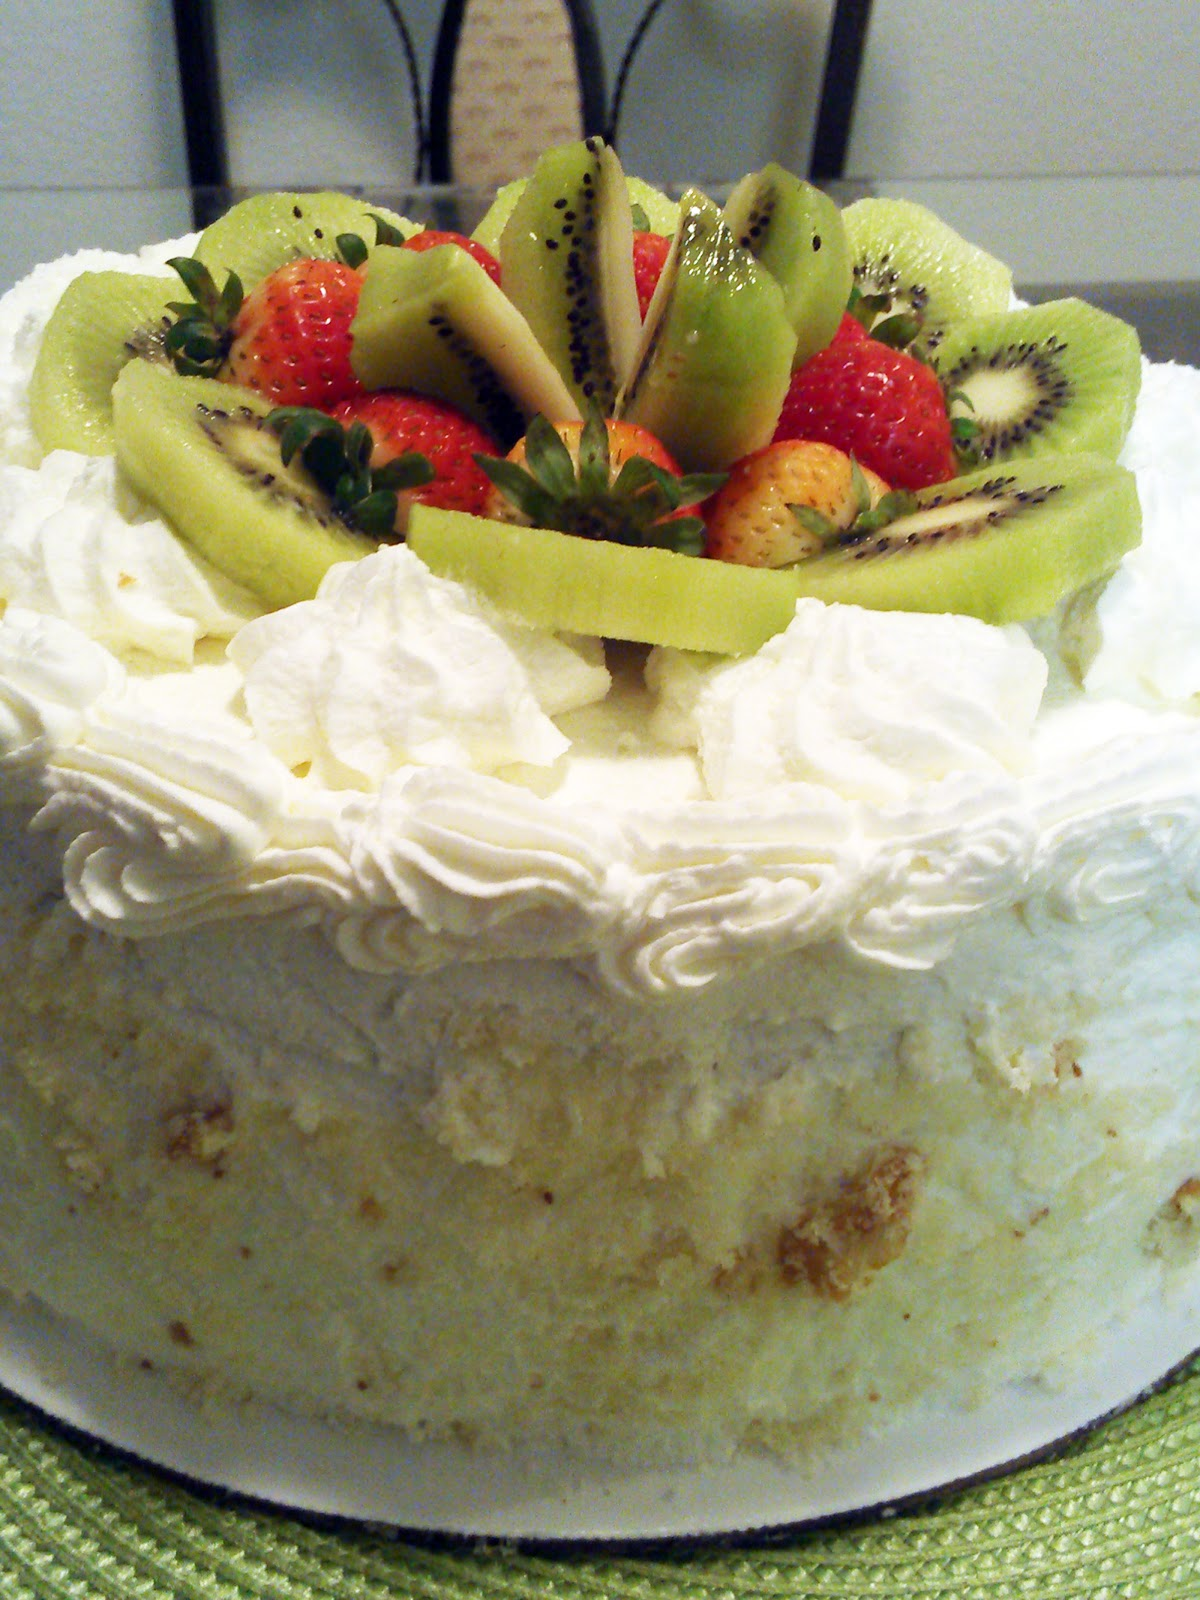 ... but Delightful Confections: Vanilla Cake w/ Whipped Cream Frosting